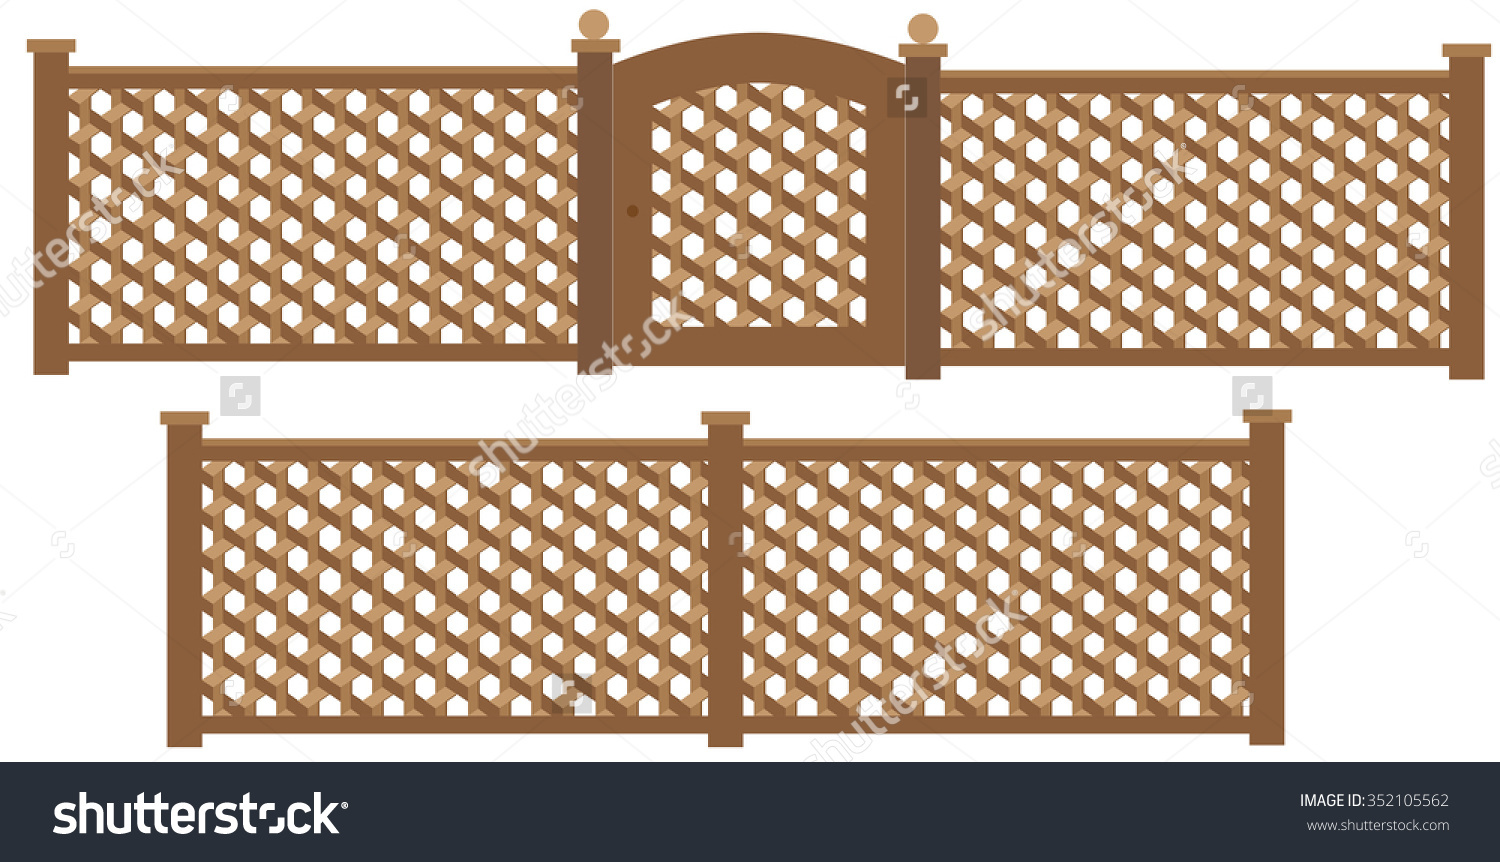 Wooden Trellis Lattice Fence Gate Vector Stock Vector 352105562.